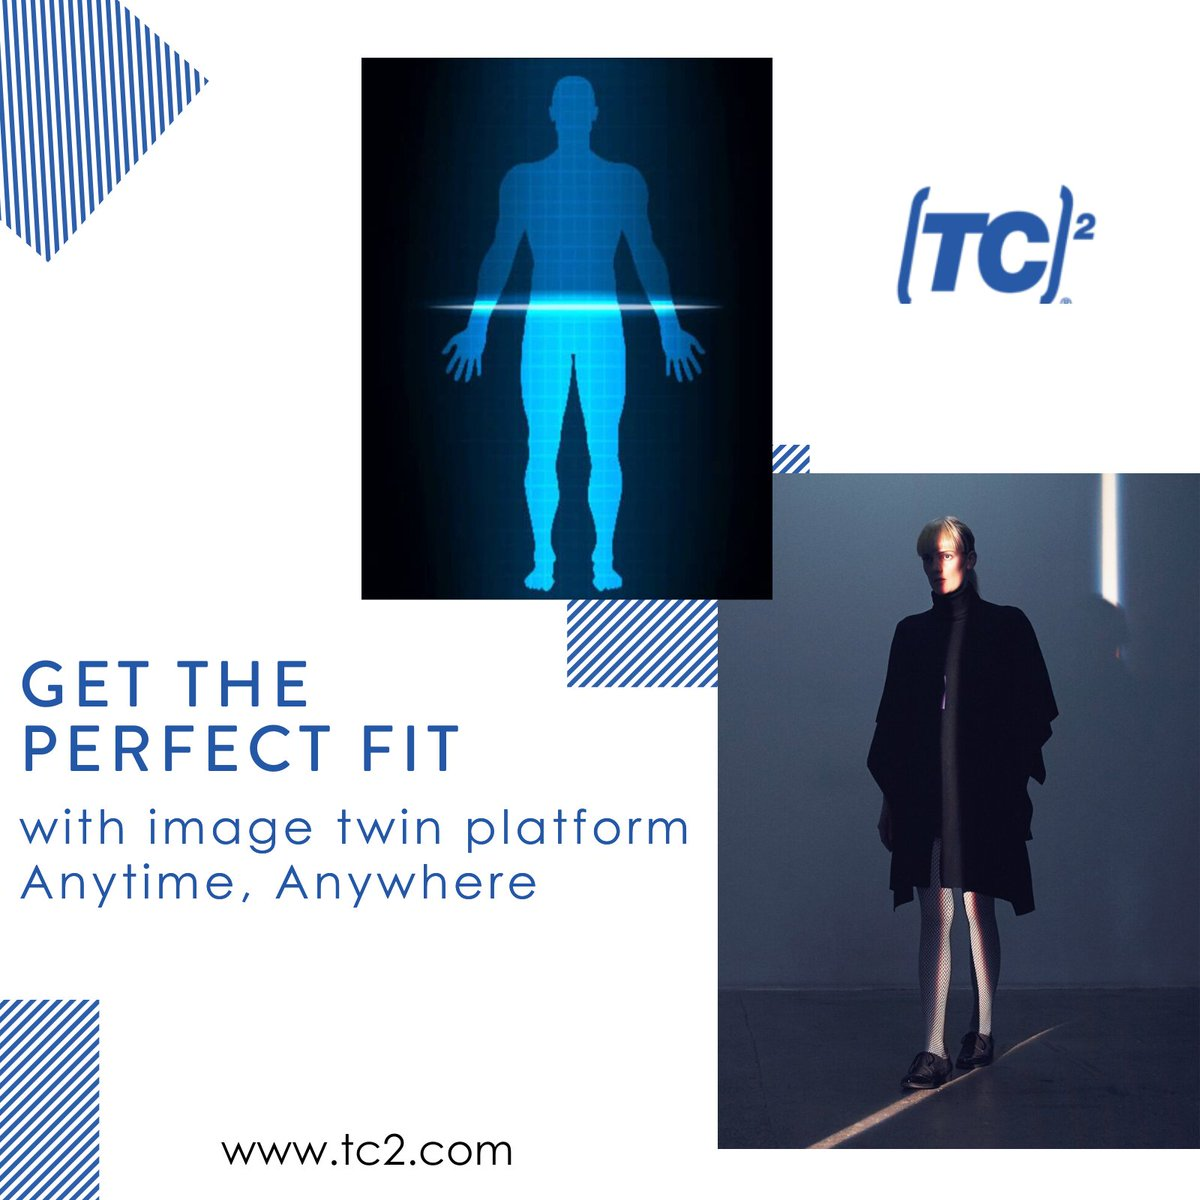 Using the best of scanning technologies. Know More >>    #MobileScanner #3DTechnology #Fashion #3dcustomisedsolutions #3DServices #3DScanners #3rdDimension #NewDimension #Tc2  #USA  #3dPrints #US #Technology #latesttrends #fittingsolution